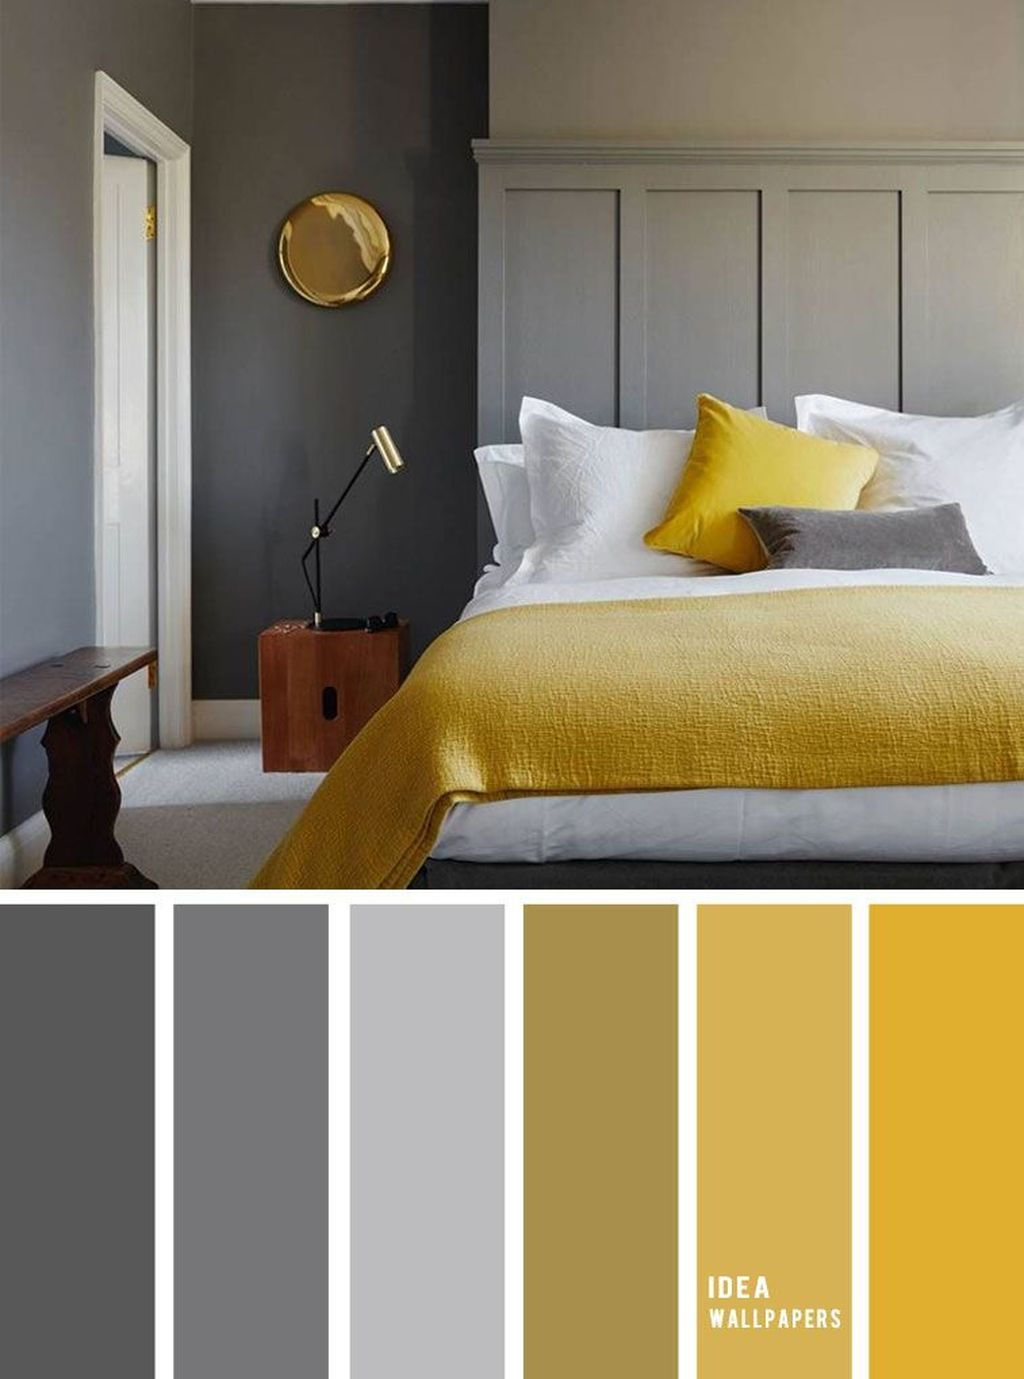 33 Latest Bedroom Color Schemes Design Ideas With Colour Palettes Revealed In 2021 Gold Bedroom Decor Bedroom Color Schemes Grey And Gold Bedroom